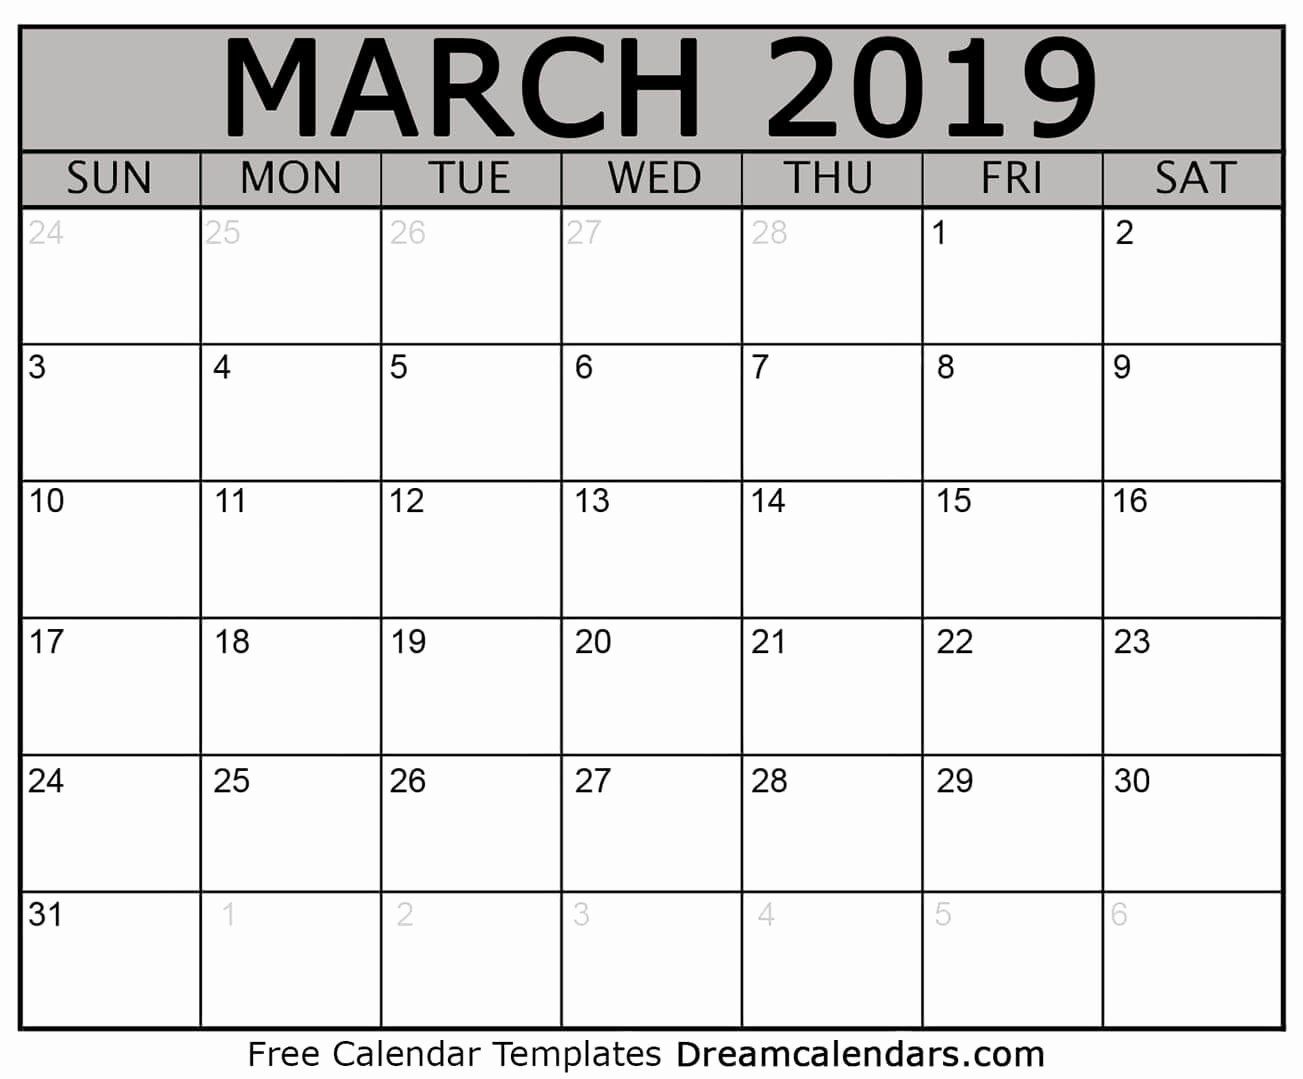 Free 2019 Calendar Template New March 2019 Calendar